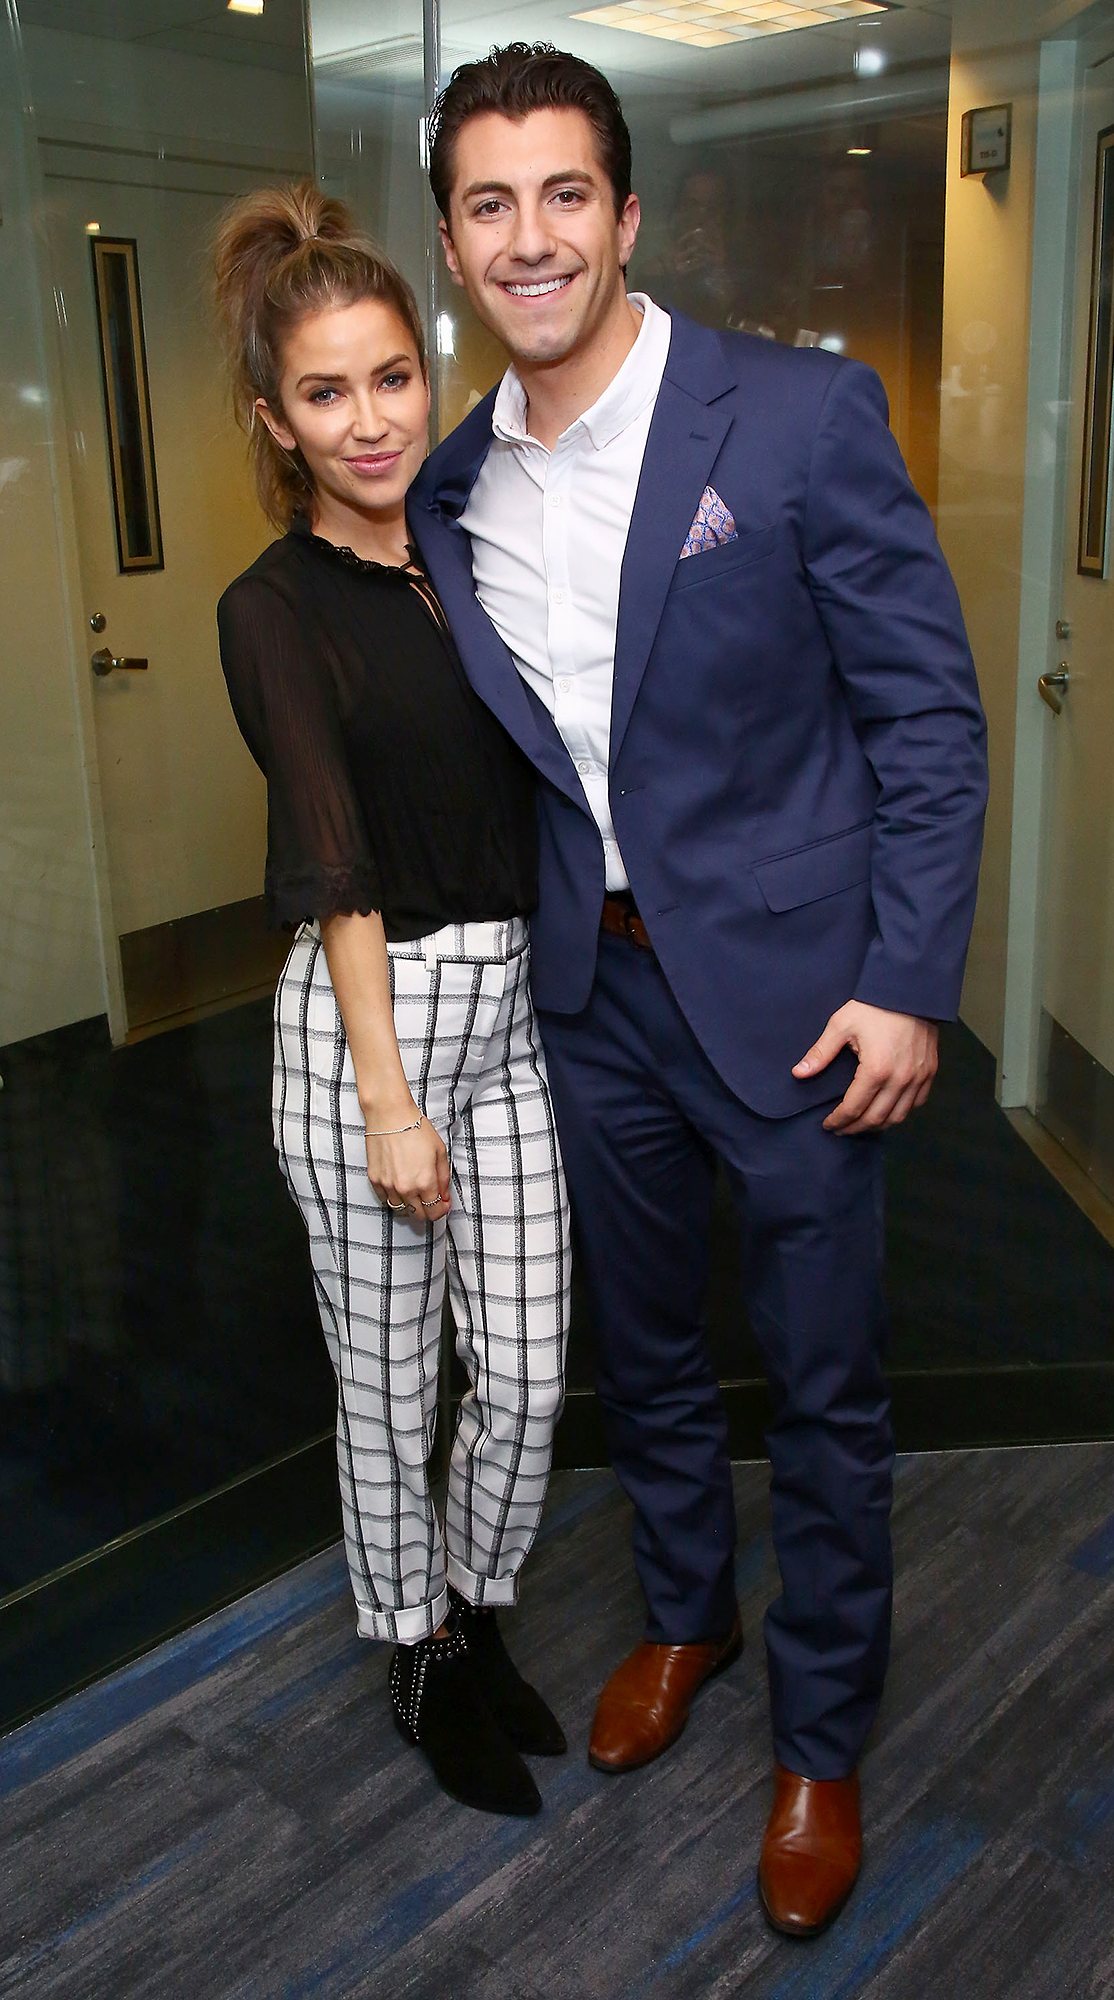 Jason Tartick and Kaitlyn Bristowe - Kaitlyn Bristowe and Jason Tartick visit the SiriusXM Studios on January 30, 2019 in New York City.